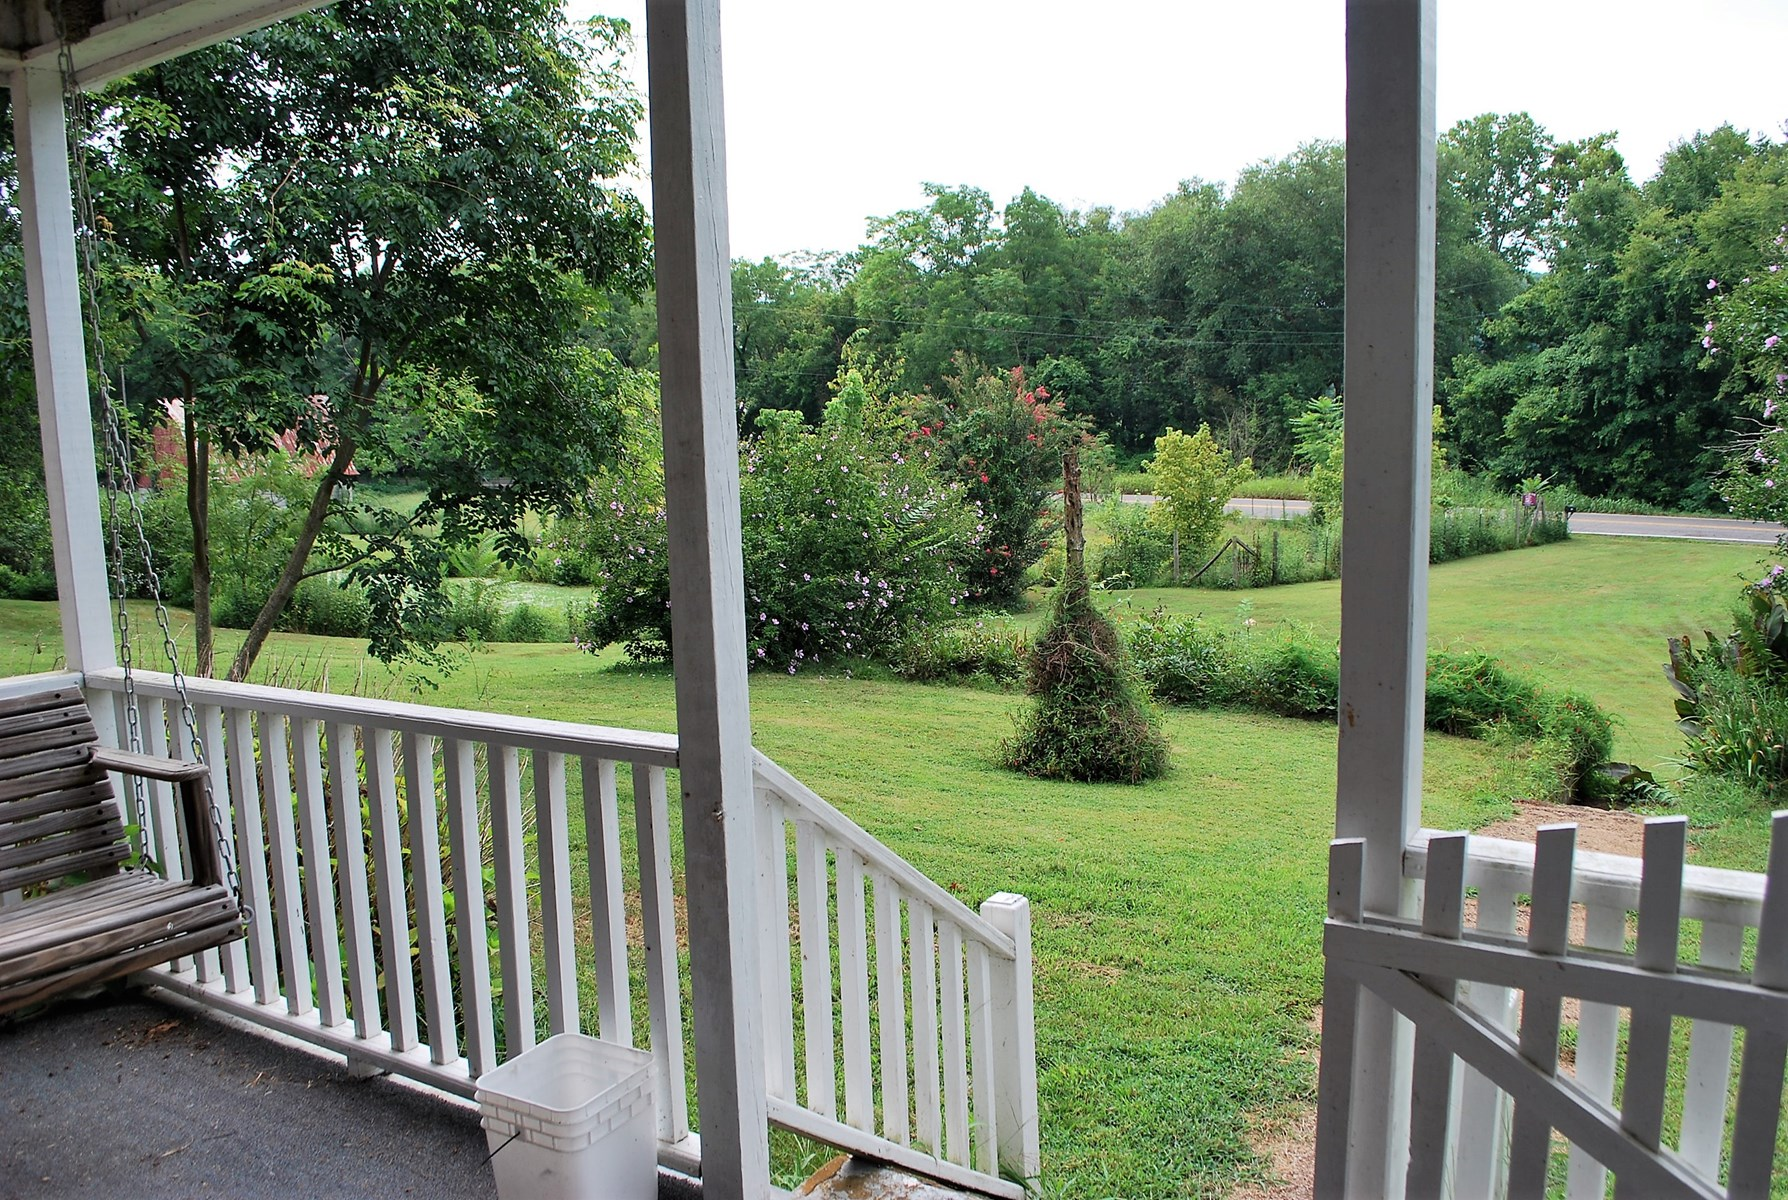 View of pond/ fenced area from front porch